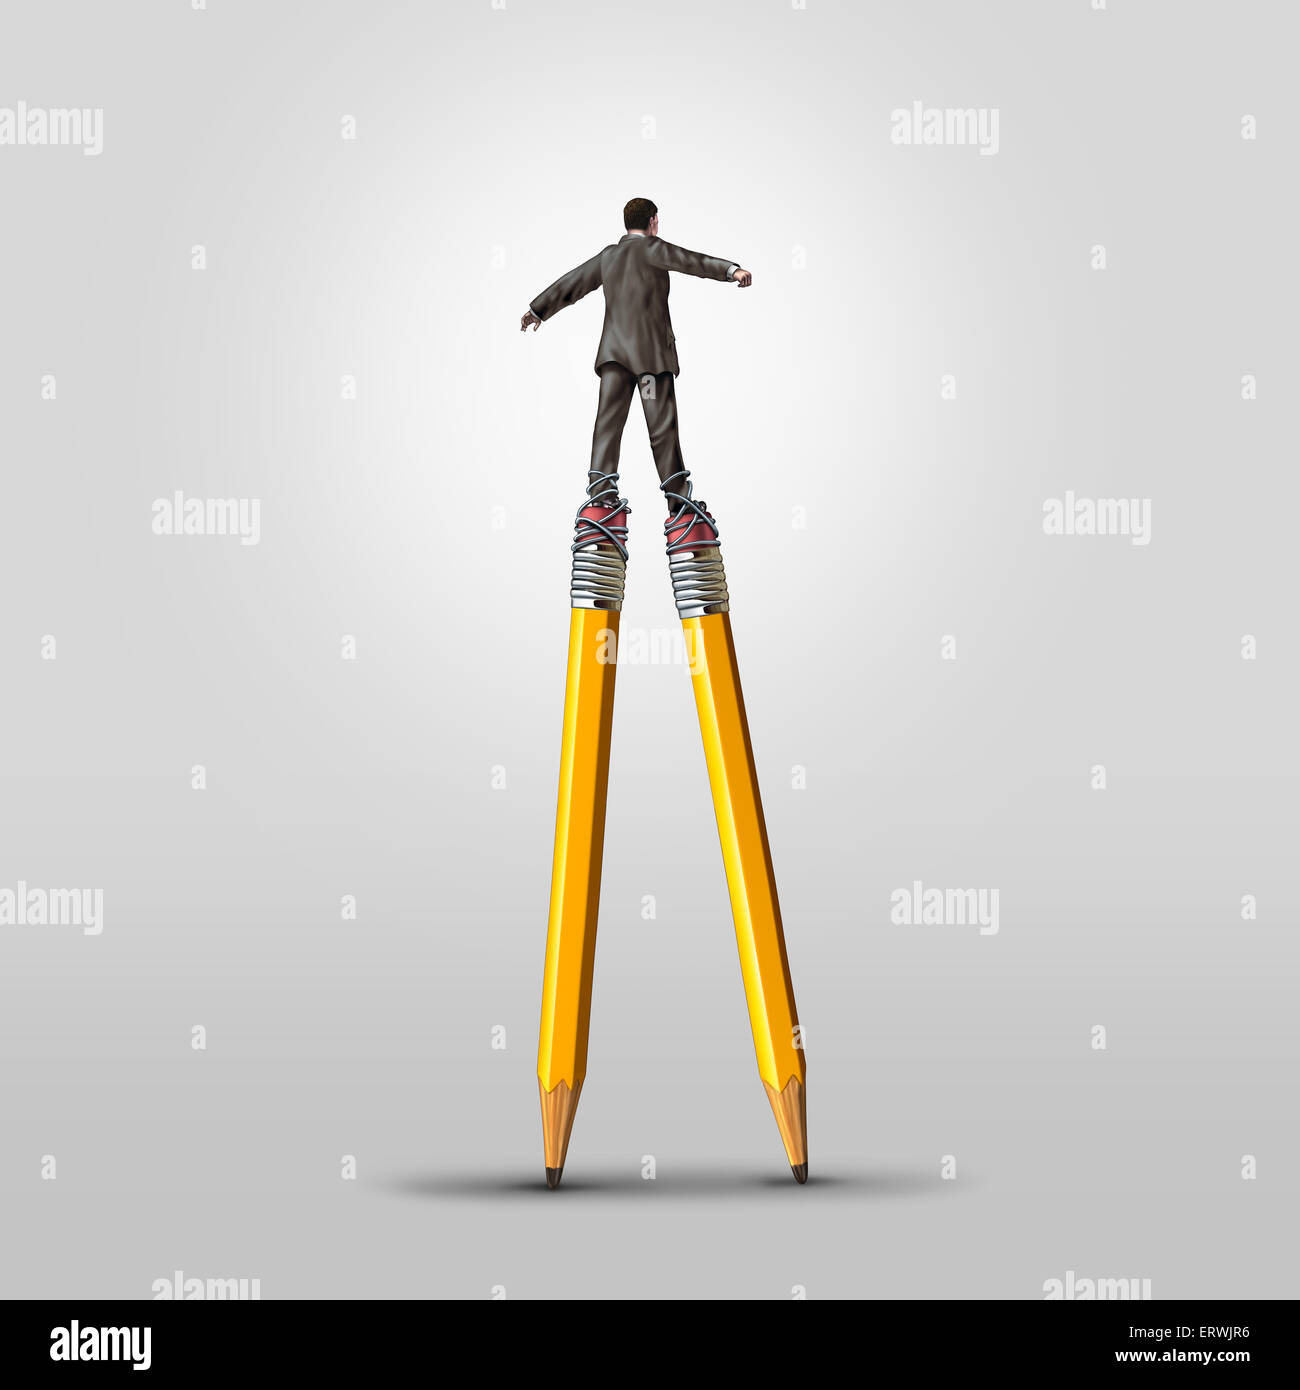 Creative skill concept as a clever businessman balancing on high pencil stilts attached to his legs as a business - Stock Image